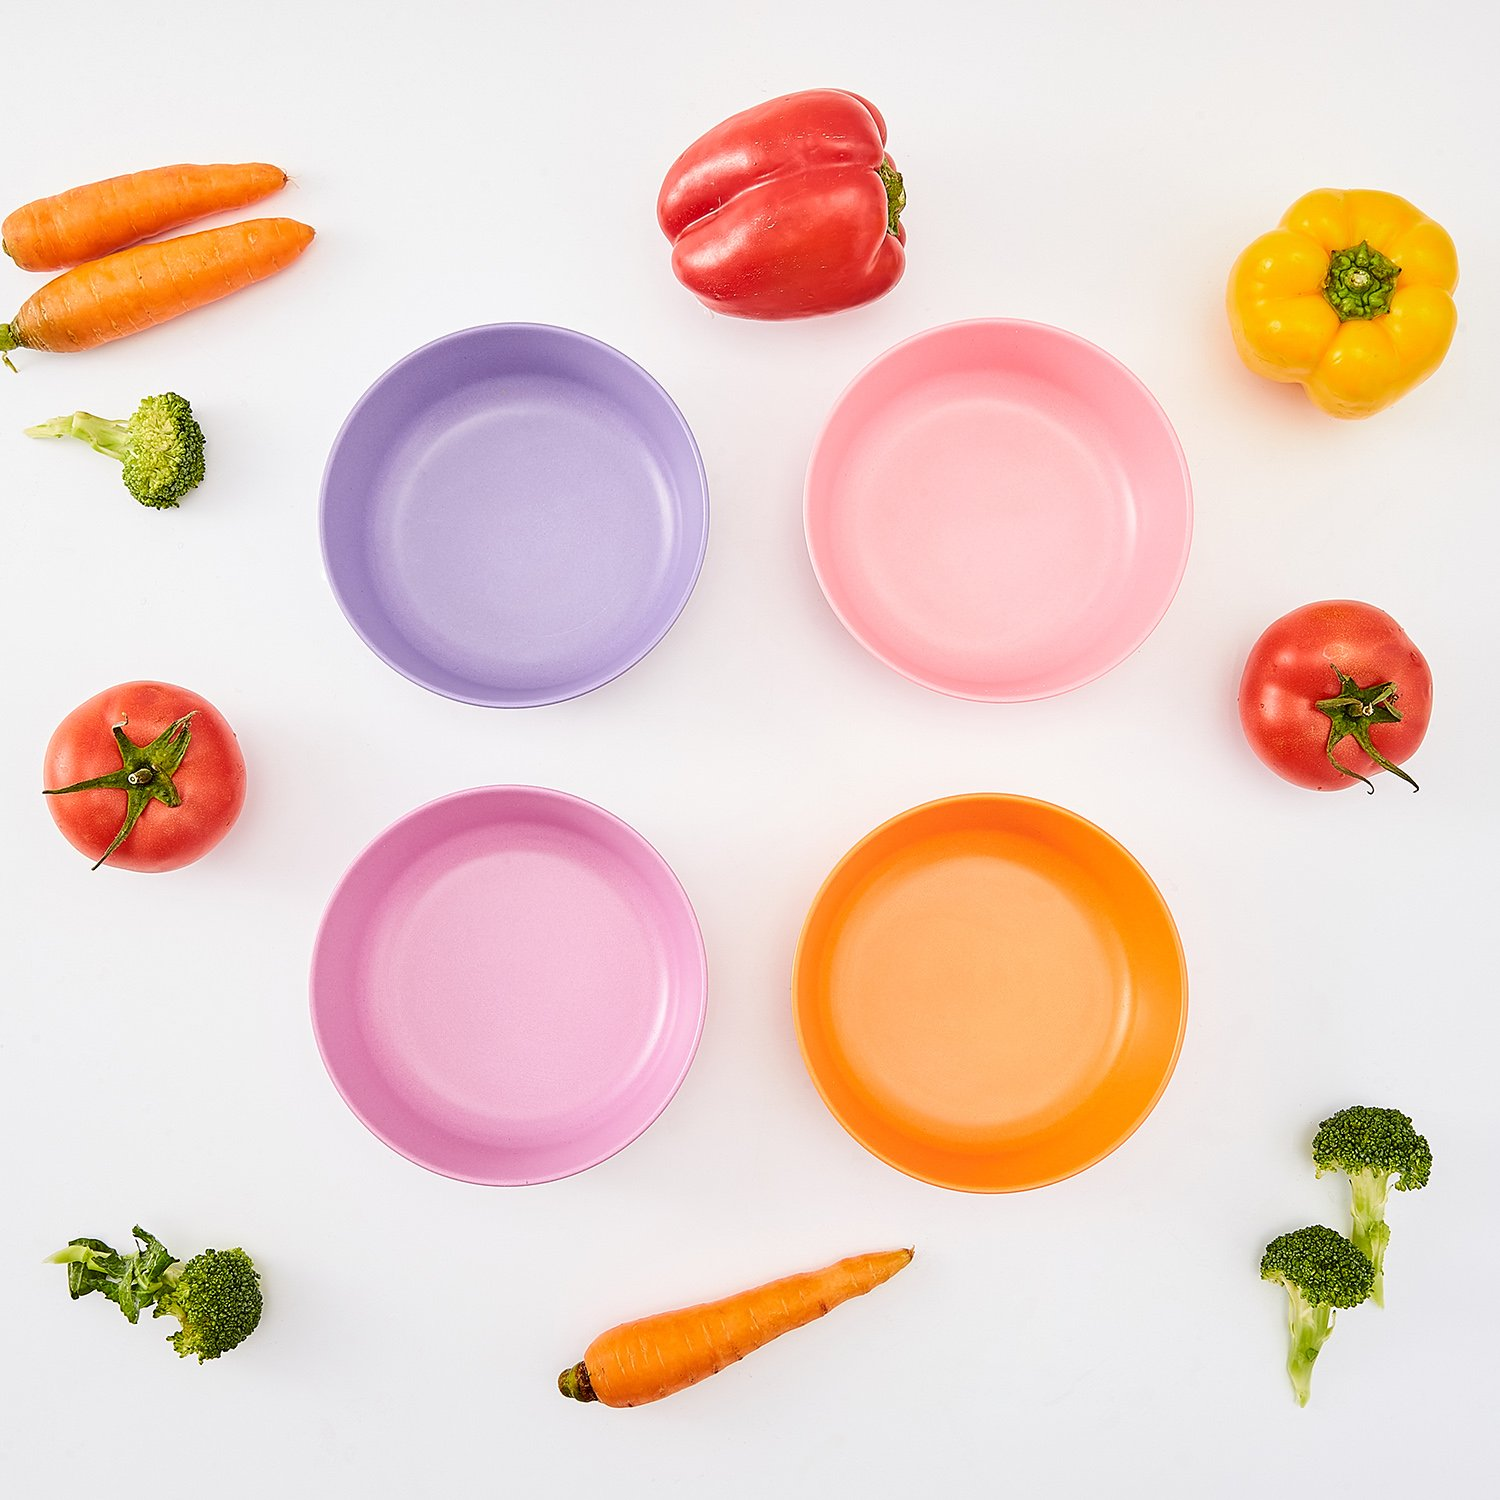 Top 13 Best Baby Bowls (2020 Reviews & Buying Guide) 13